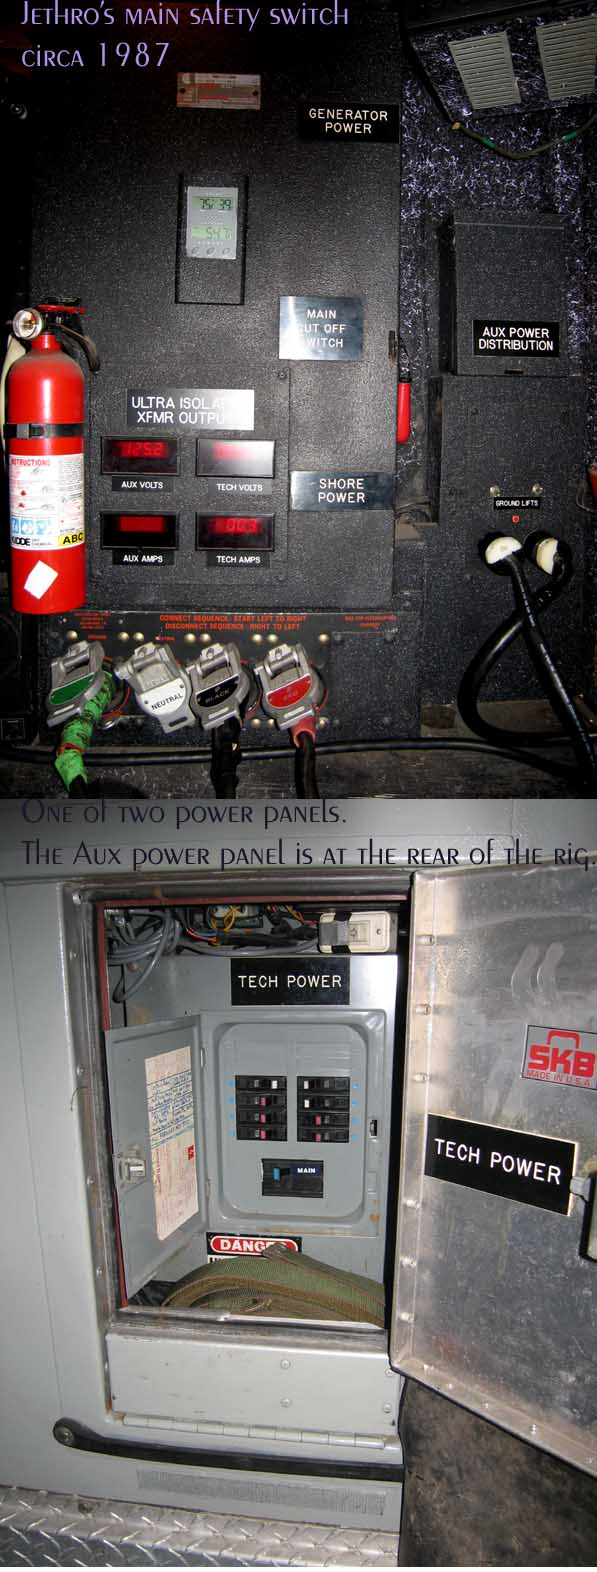 20 Amp Plugs And Other Power Concerns Gearslutz Turning Off A 20amp Circuit Breaker Jethropower